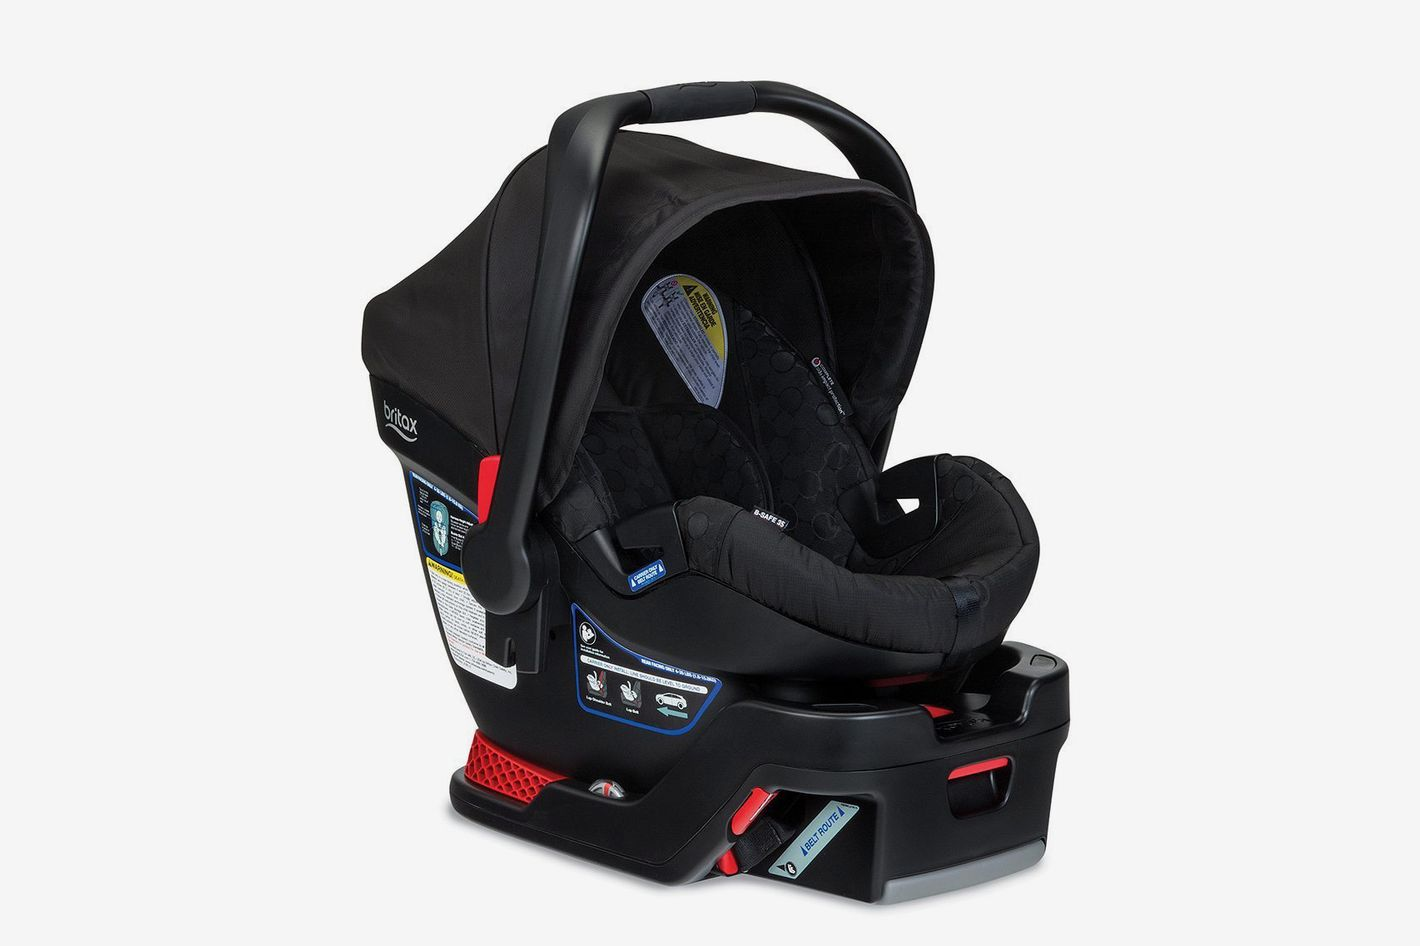 20 Best Infant Car Seats And Booster Seats 2019